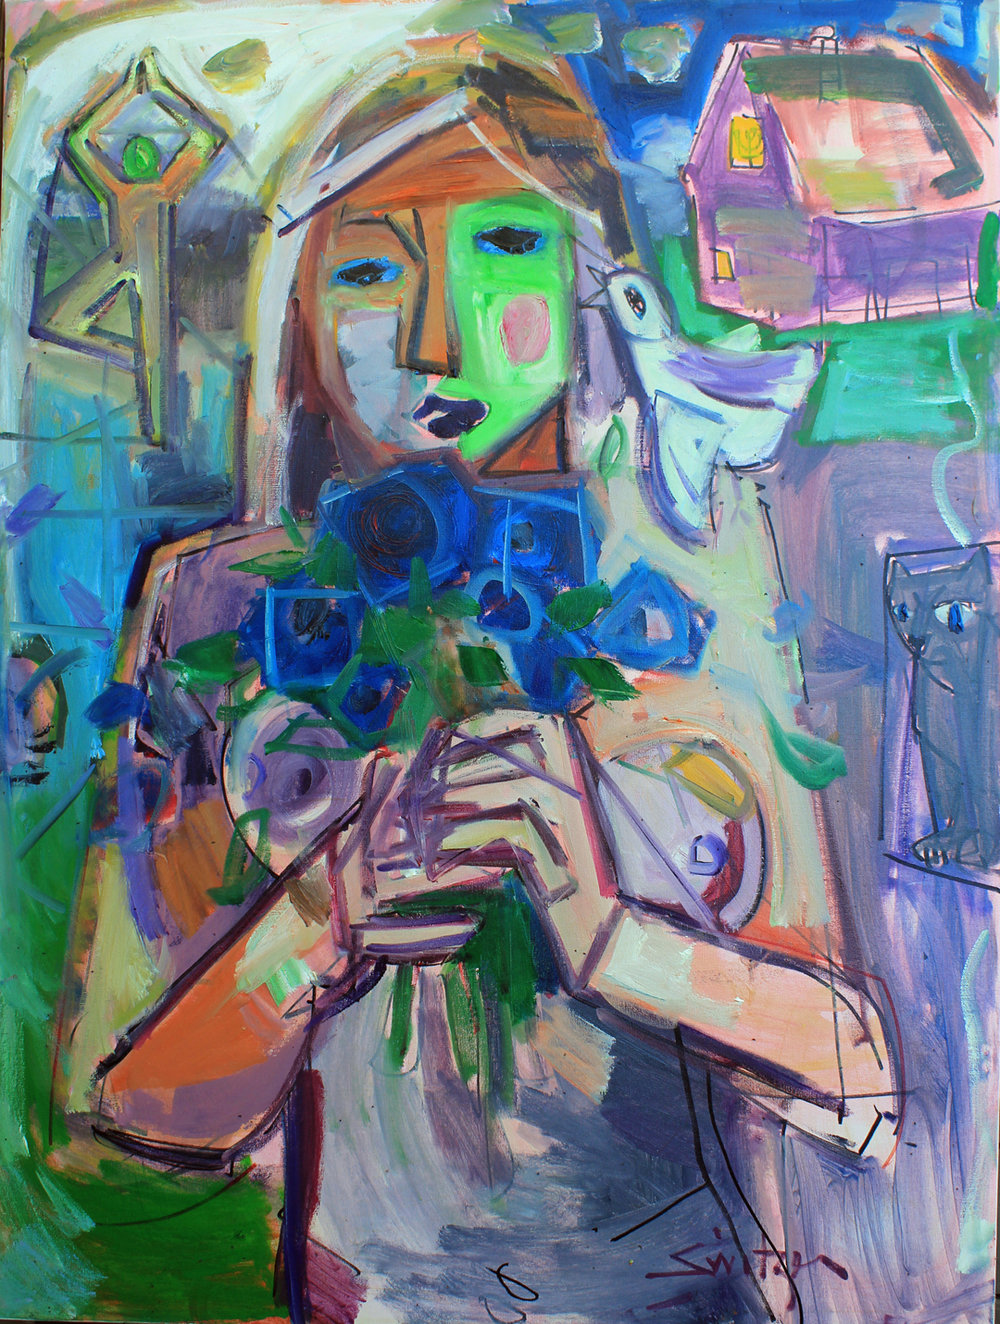 """Farm, Muse, & the Man"", 36x24 inches, oil on canvas, SOLD."